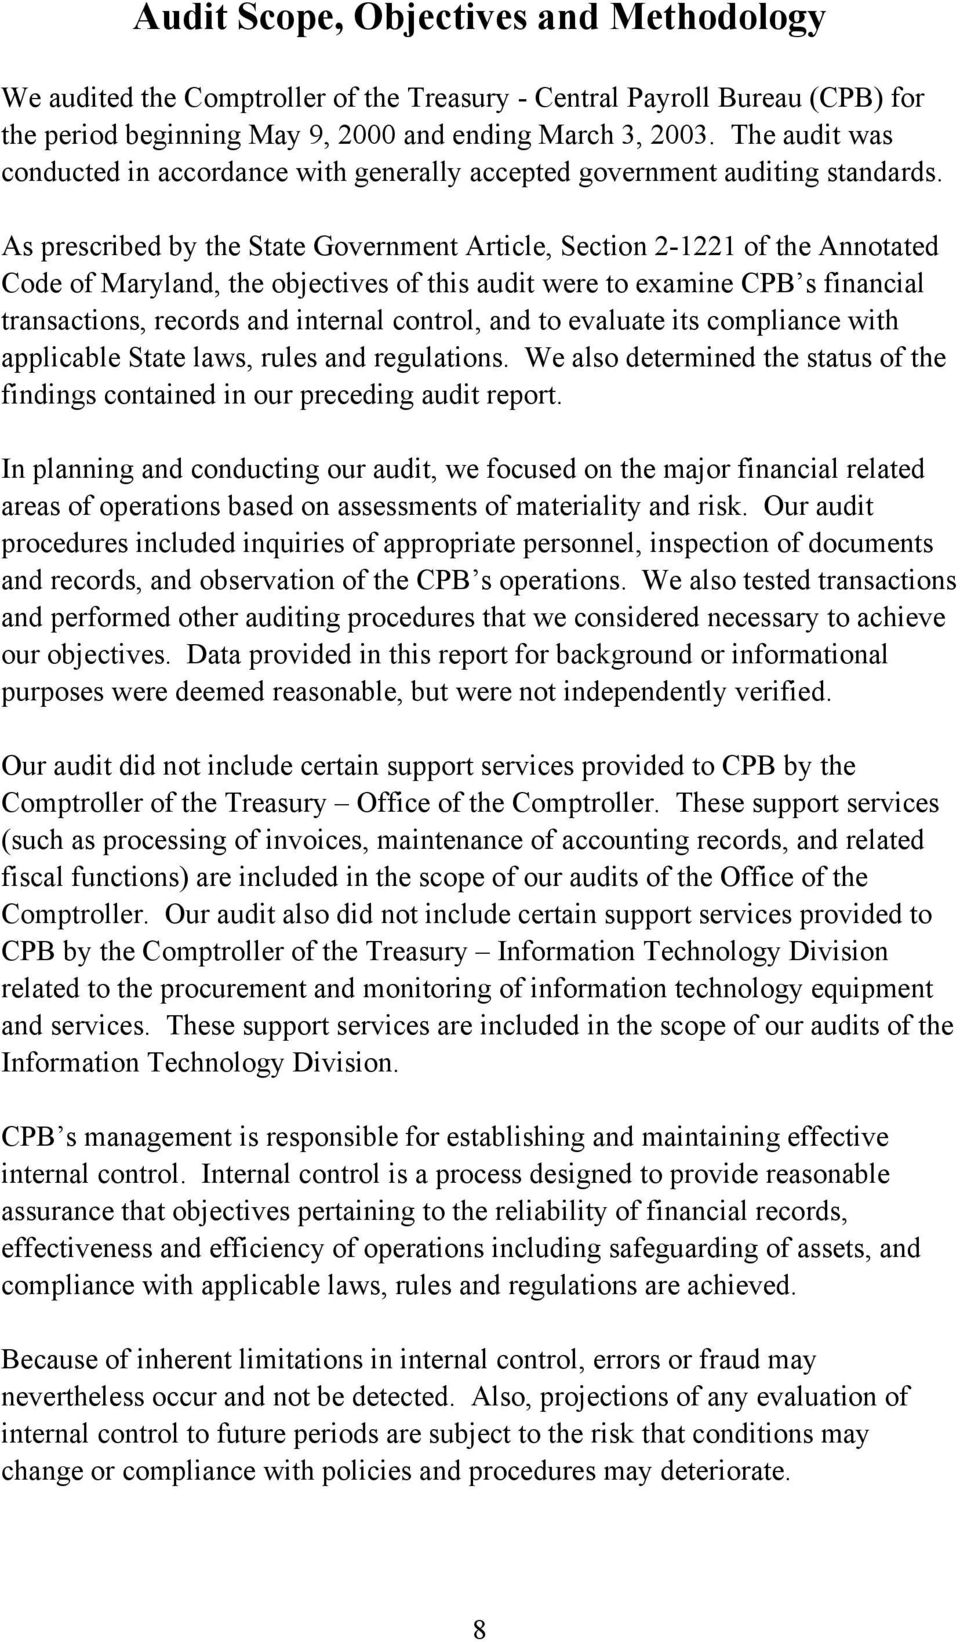 As prescribed by the State Government Article, Section 2-1221 of the Annotated Code of Maryland, the objectives of this audit were to examine CPB s financial transactions, records and internal